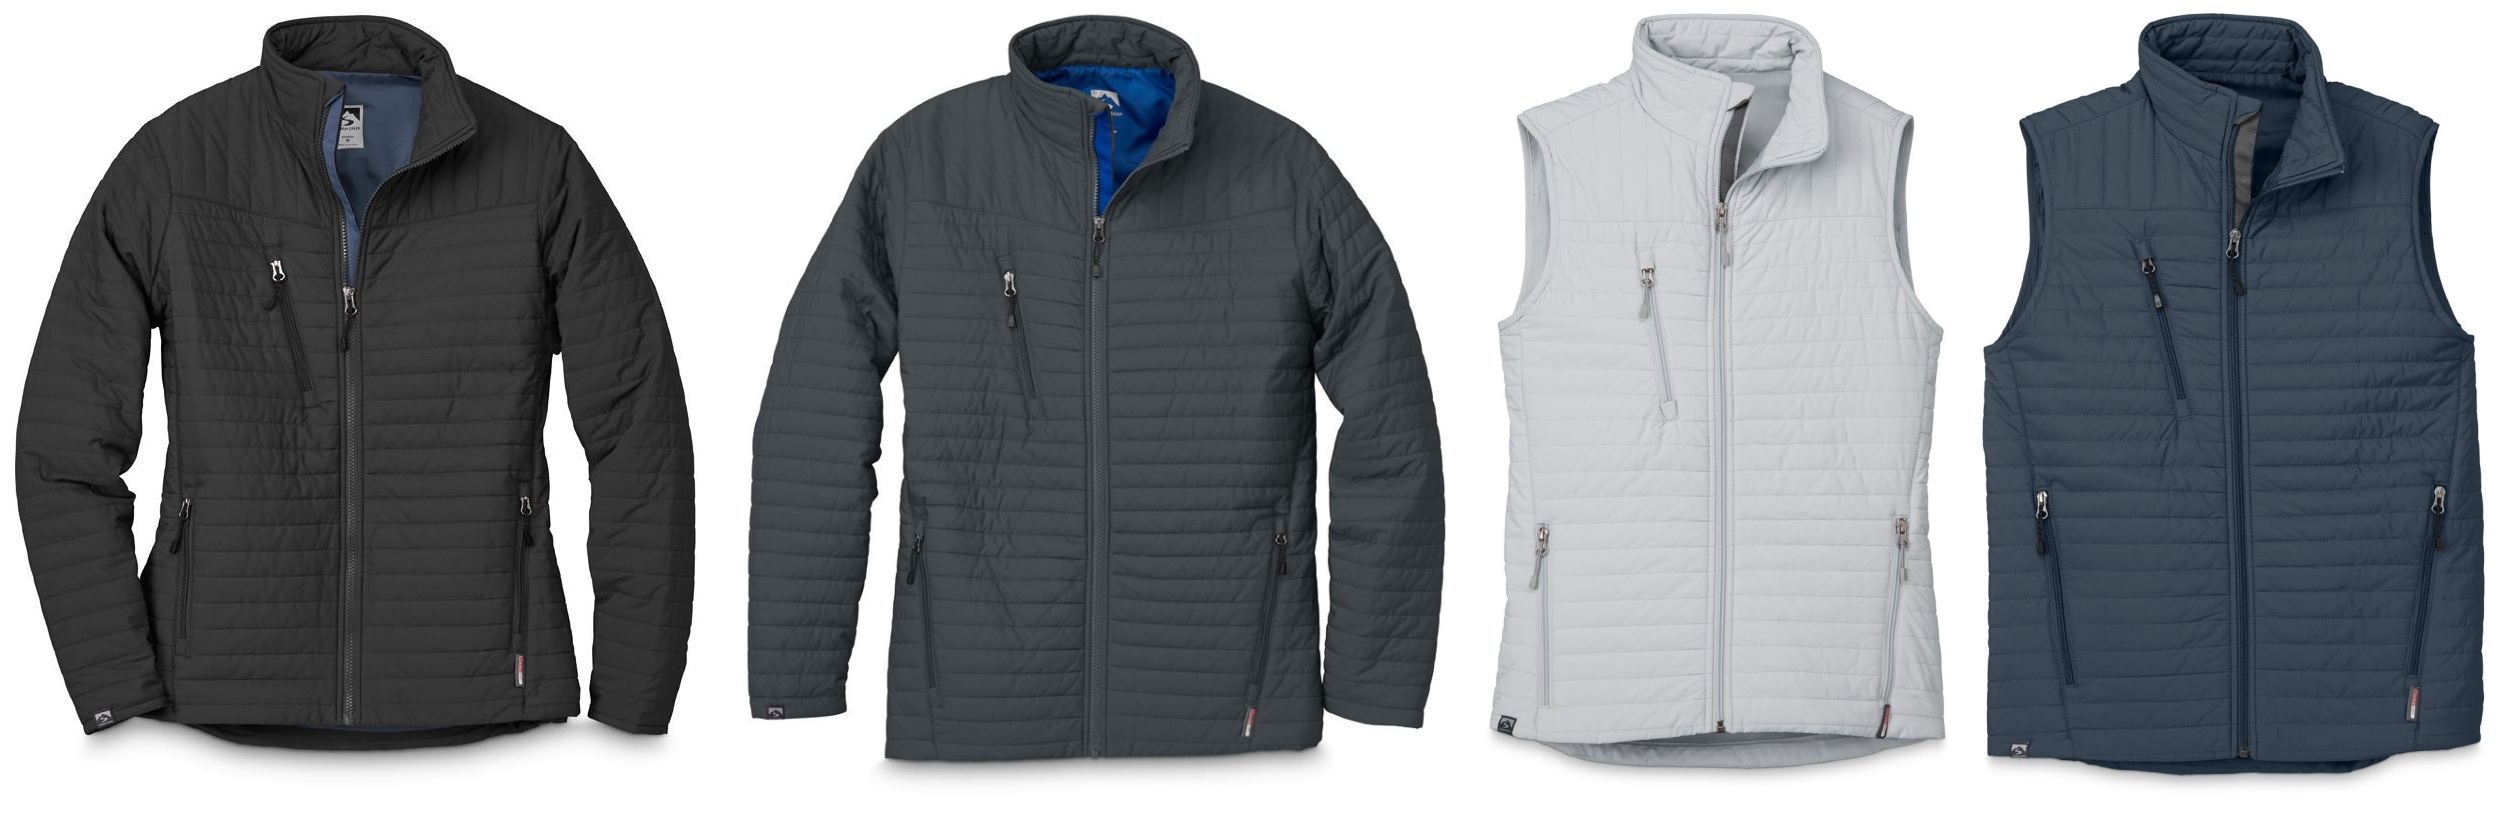 Storm Creek Thermolite Quilted Jacket and Outerwear from NYFifth